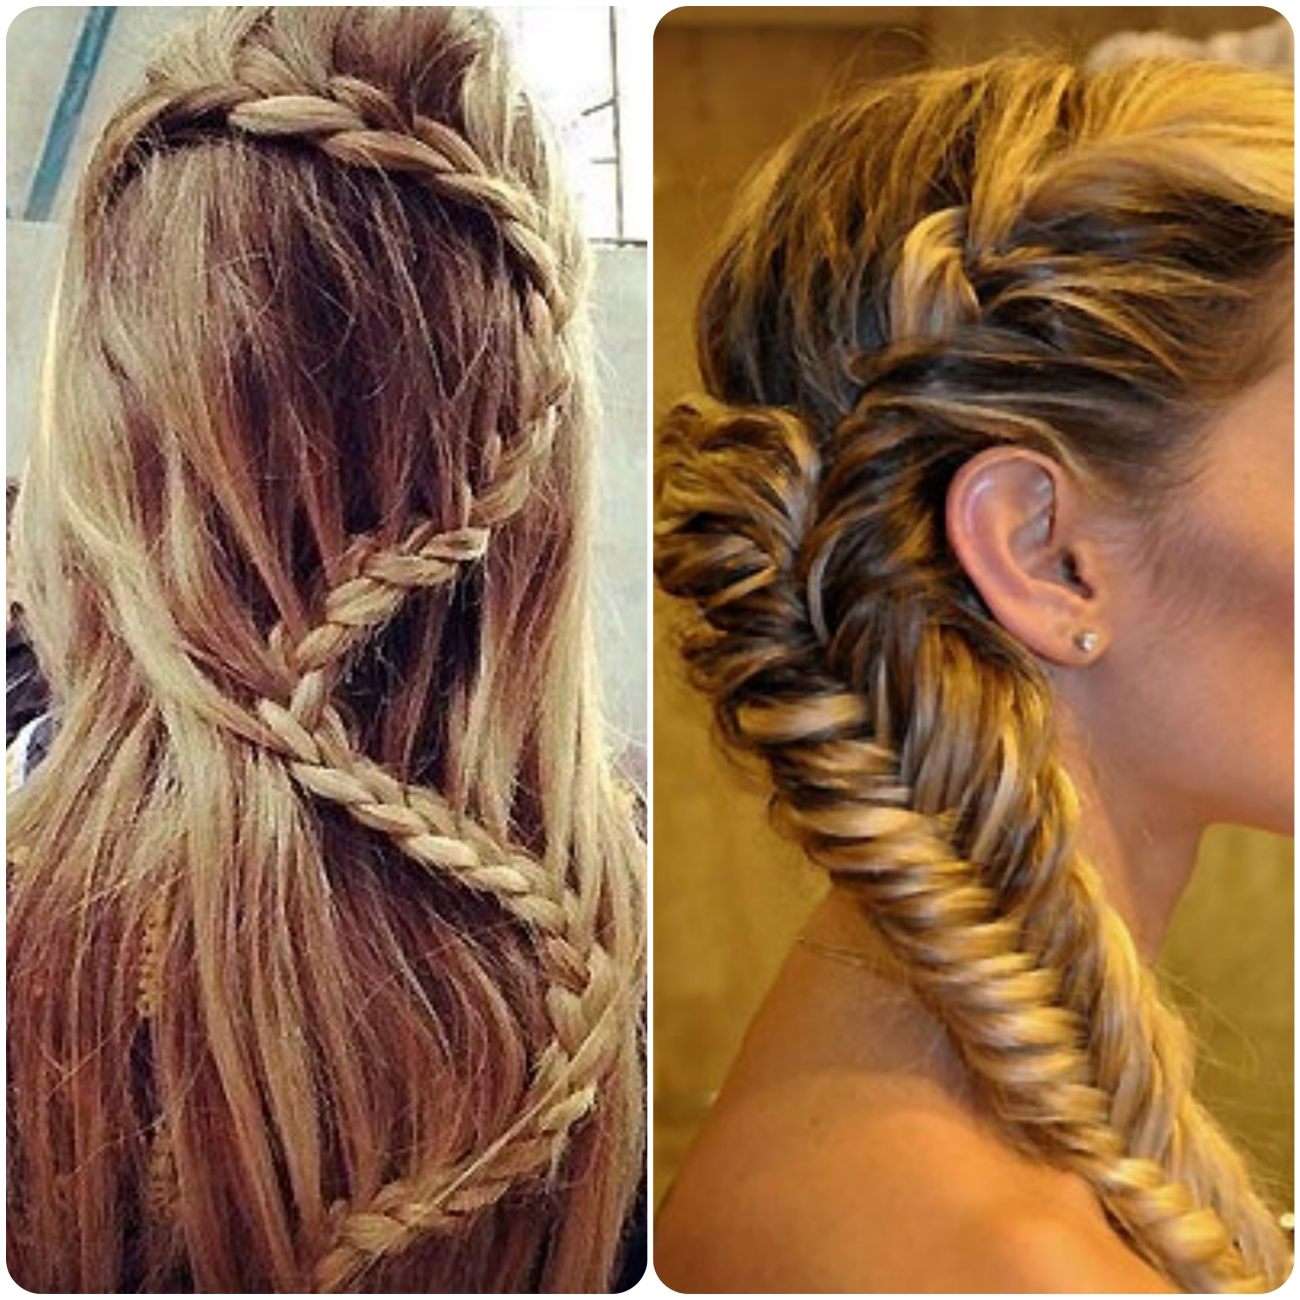 Best-braidbved-hairstyle_Fotor_Collage